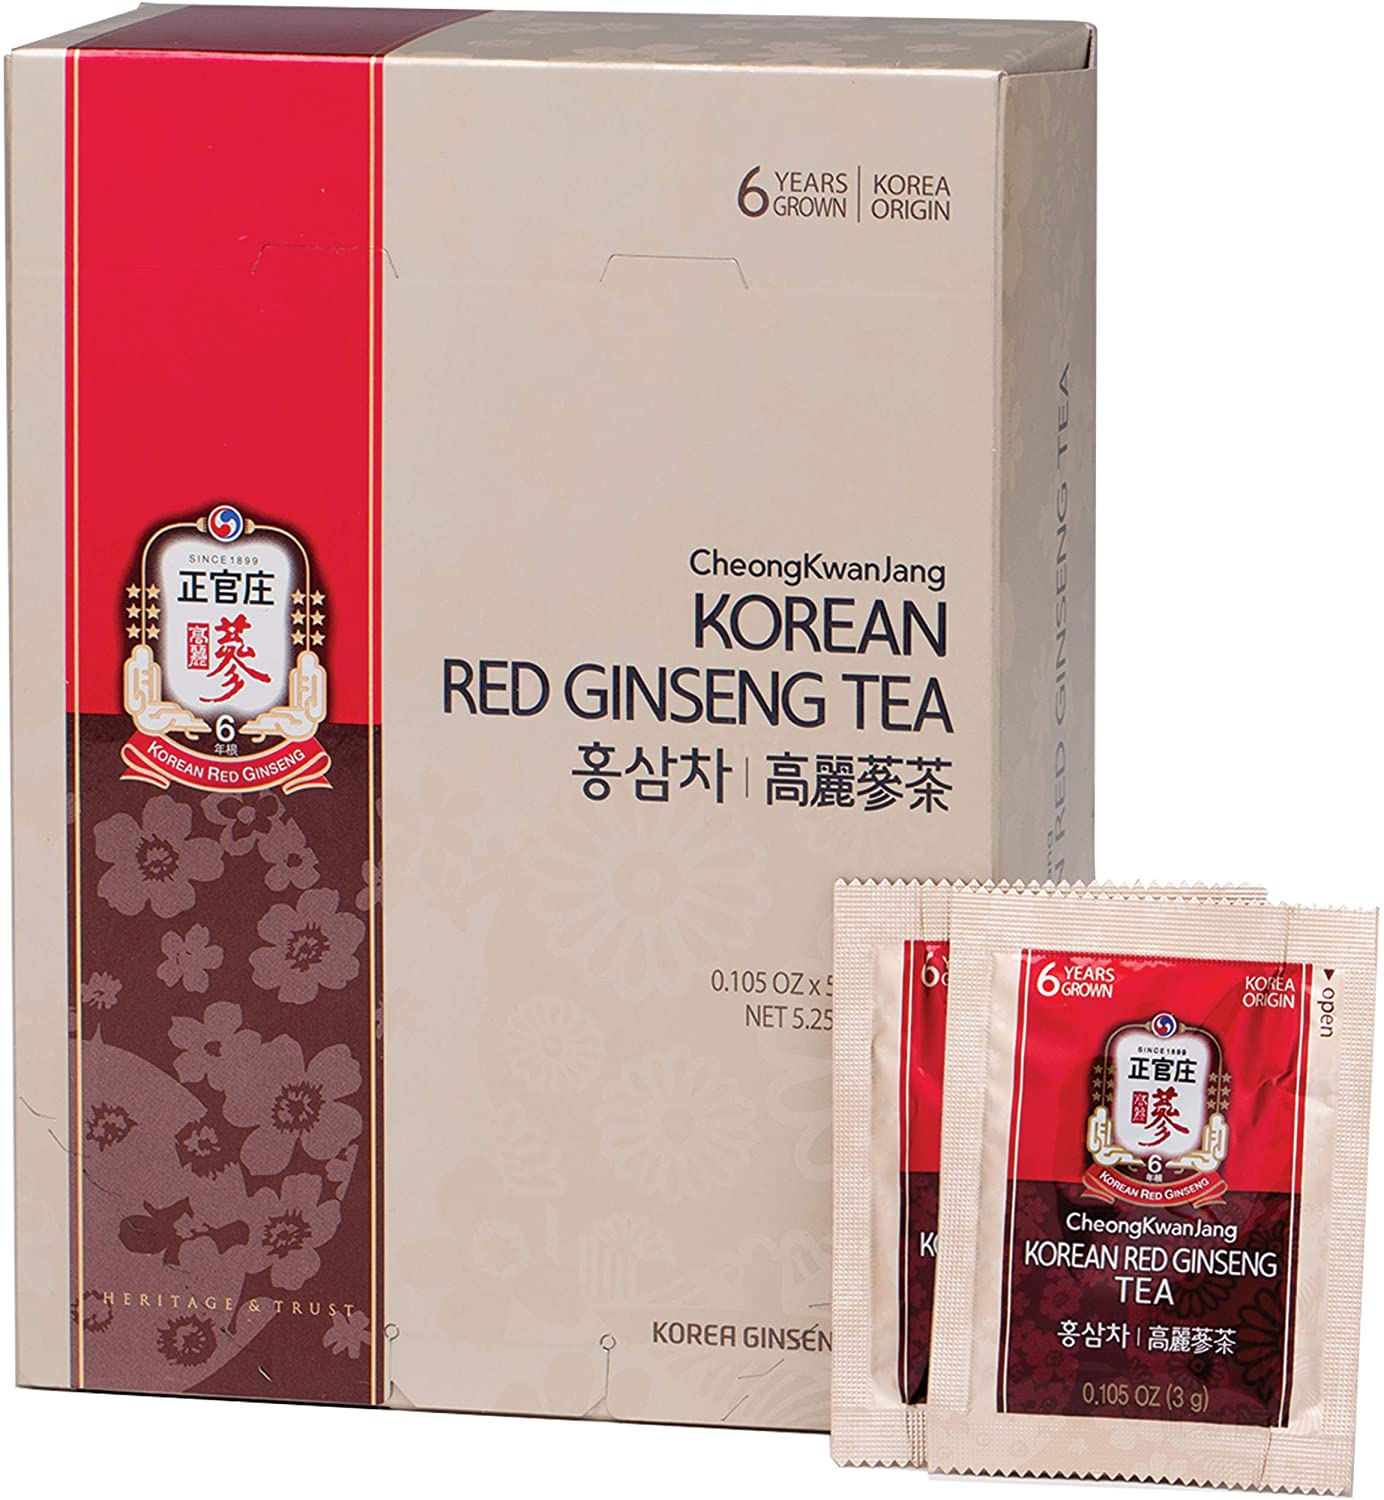 Korean Red Ginseng Tea] Convenient Natural and Organic Ginseng Tea - 50 Bags